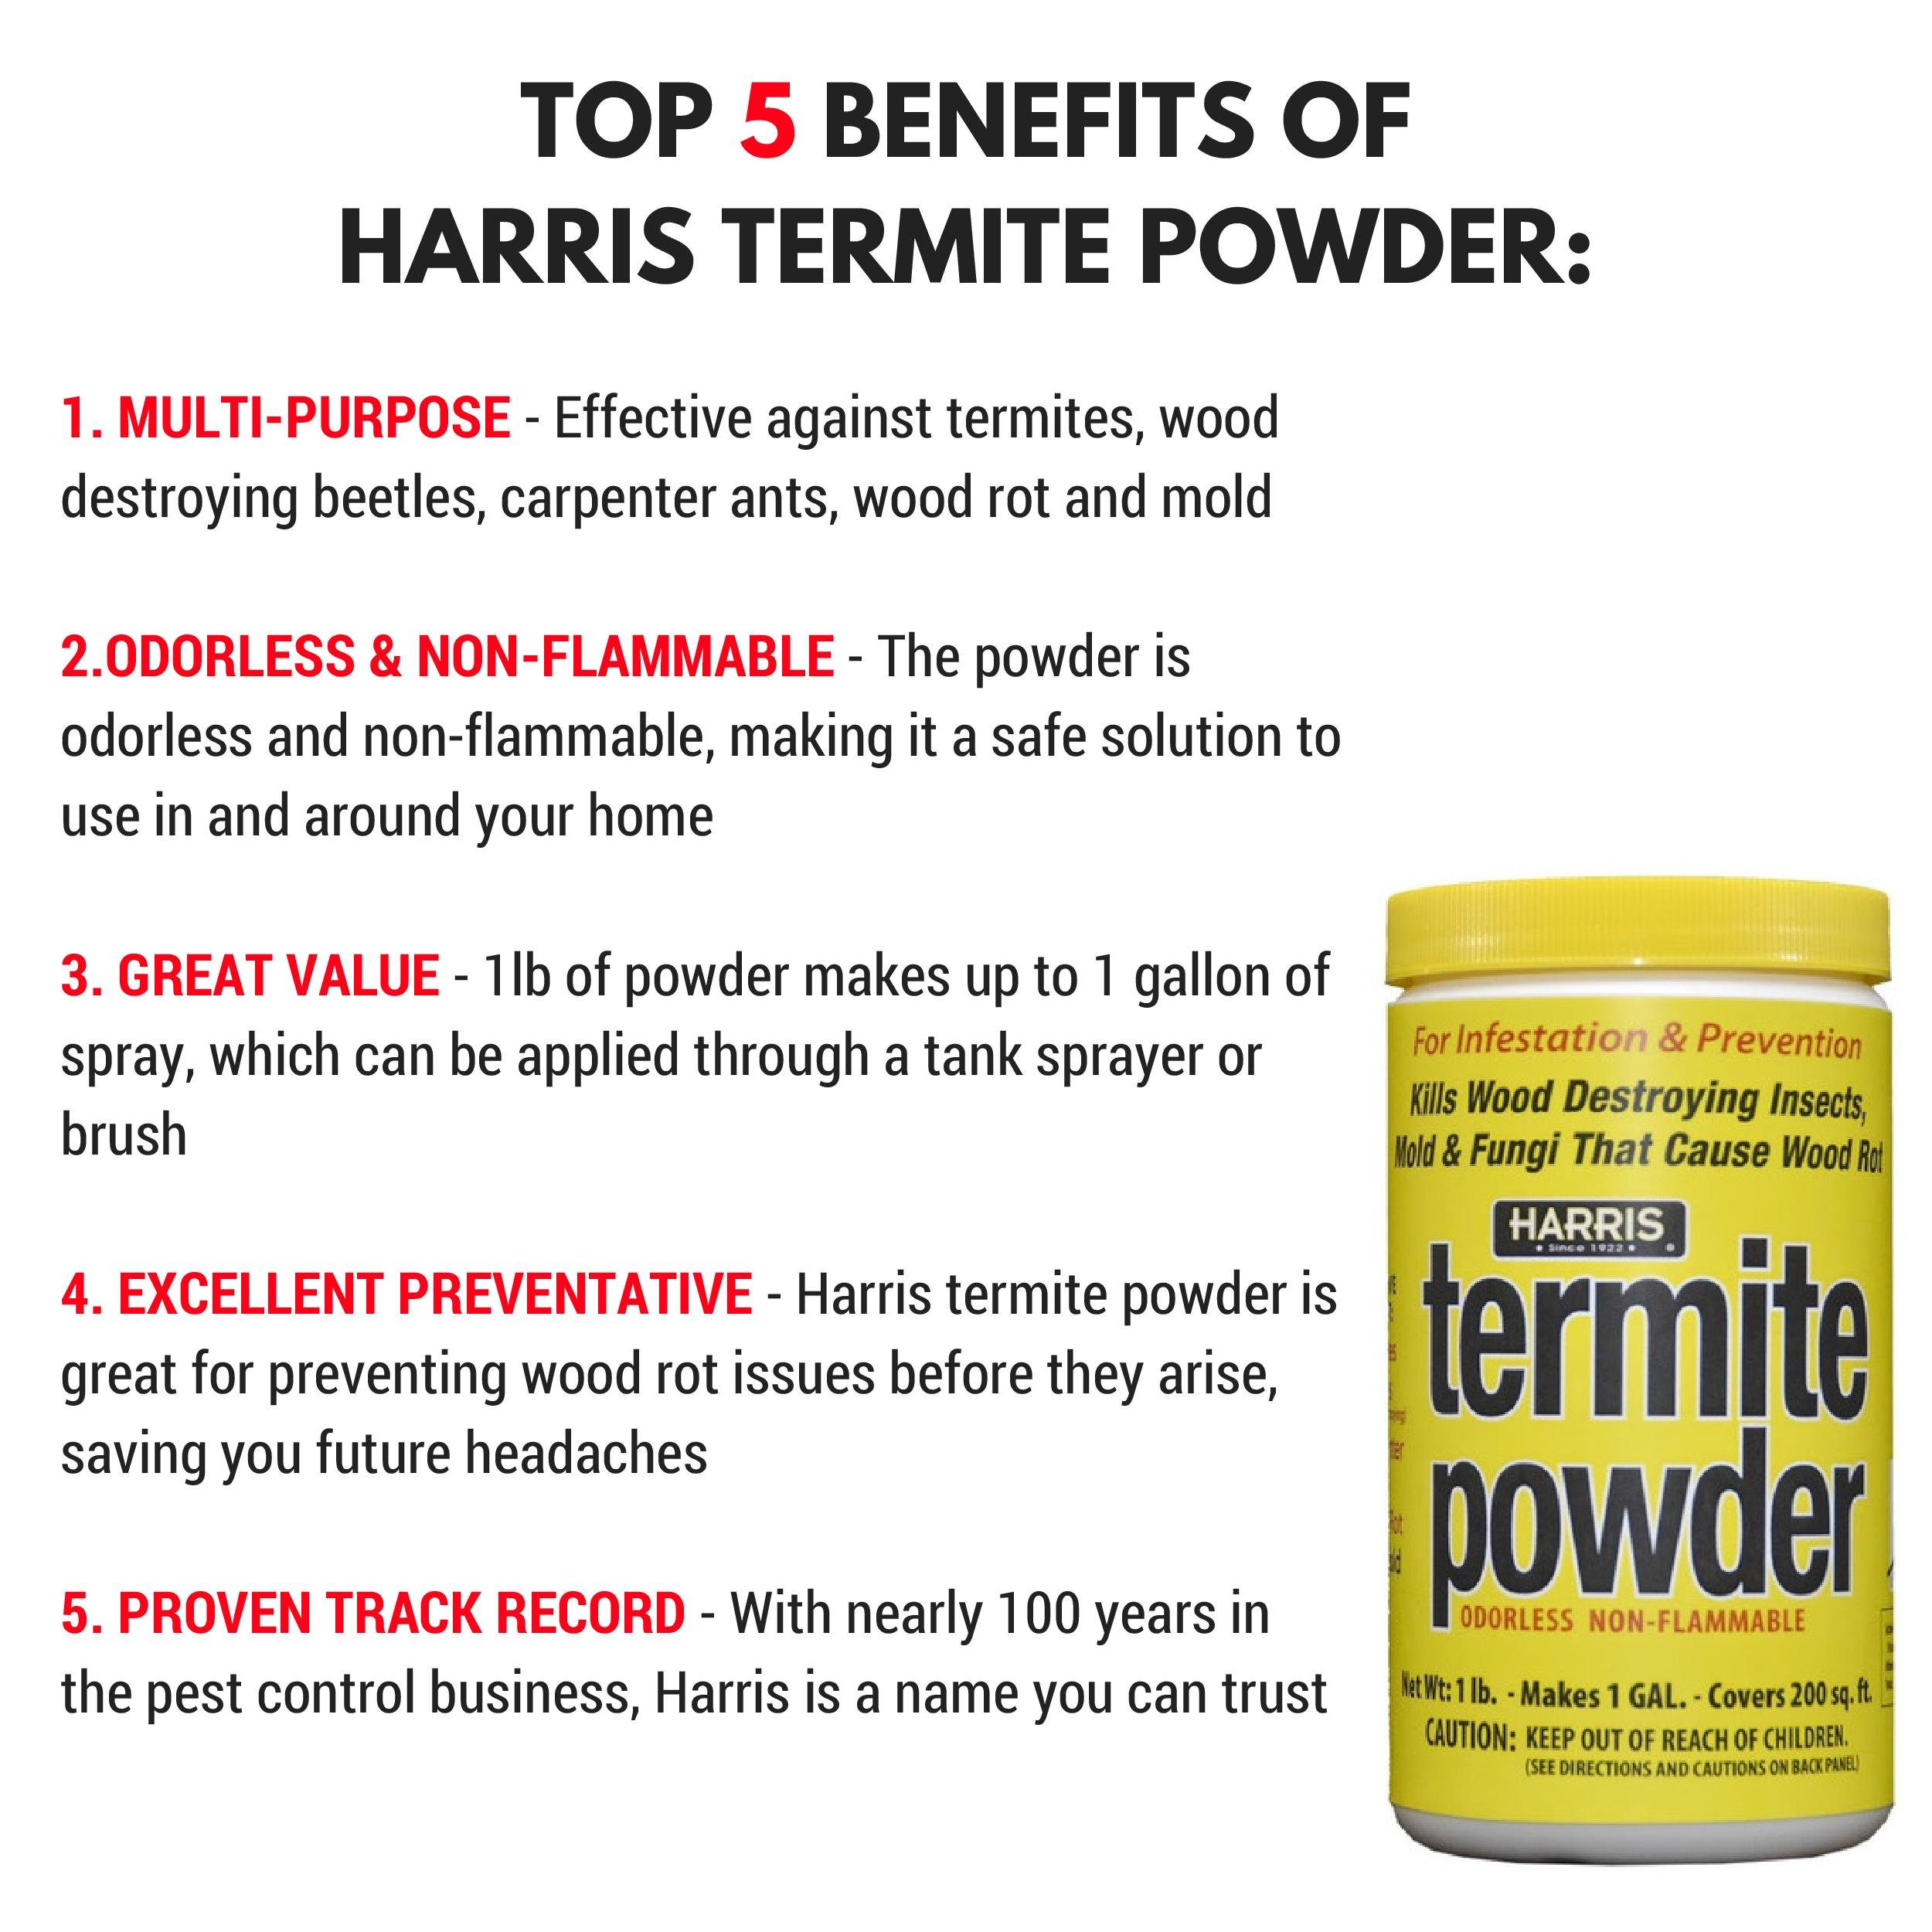 Harris Termite Treatment and Mold Killer, 16oz Powder, Makes 1 Gallon Liquid Spray for Preventing, Controlling and Killing Termites, Wood Destroying Beetles, Carpenter Ants and More by Harris